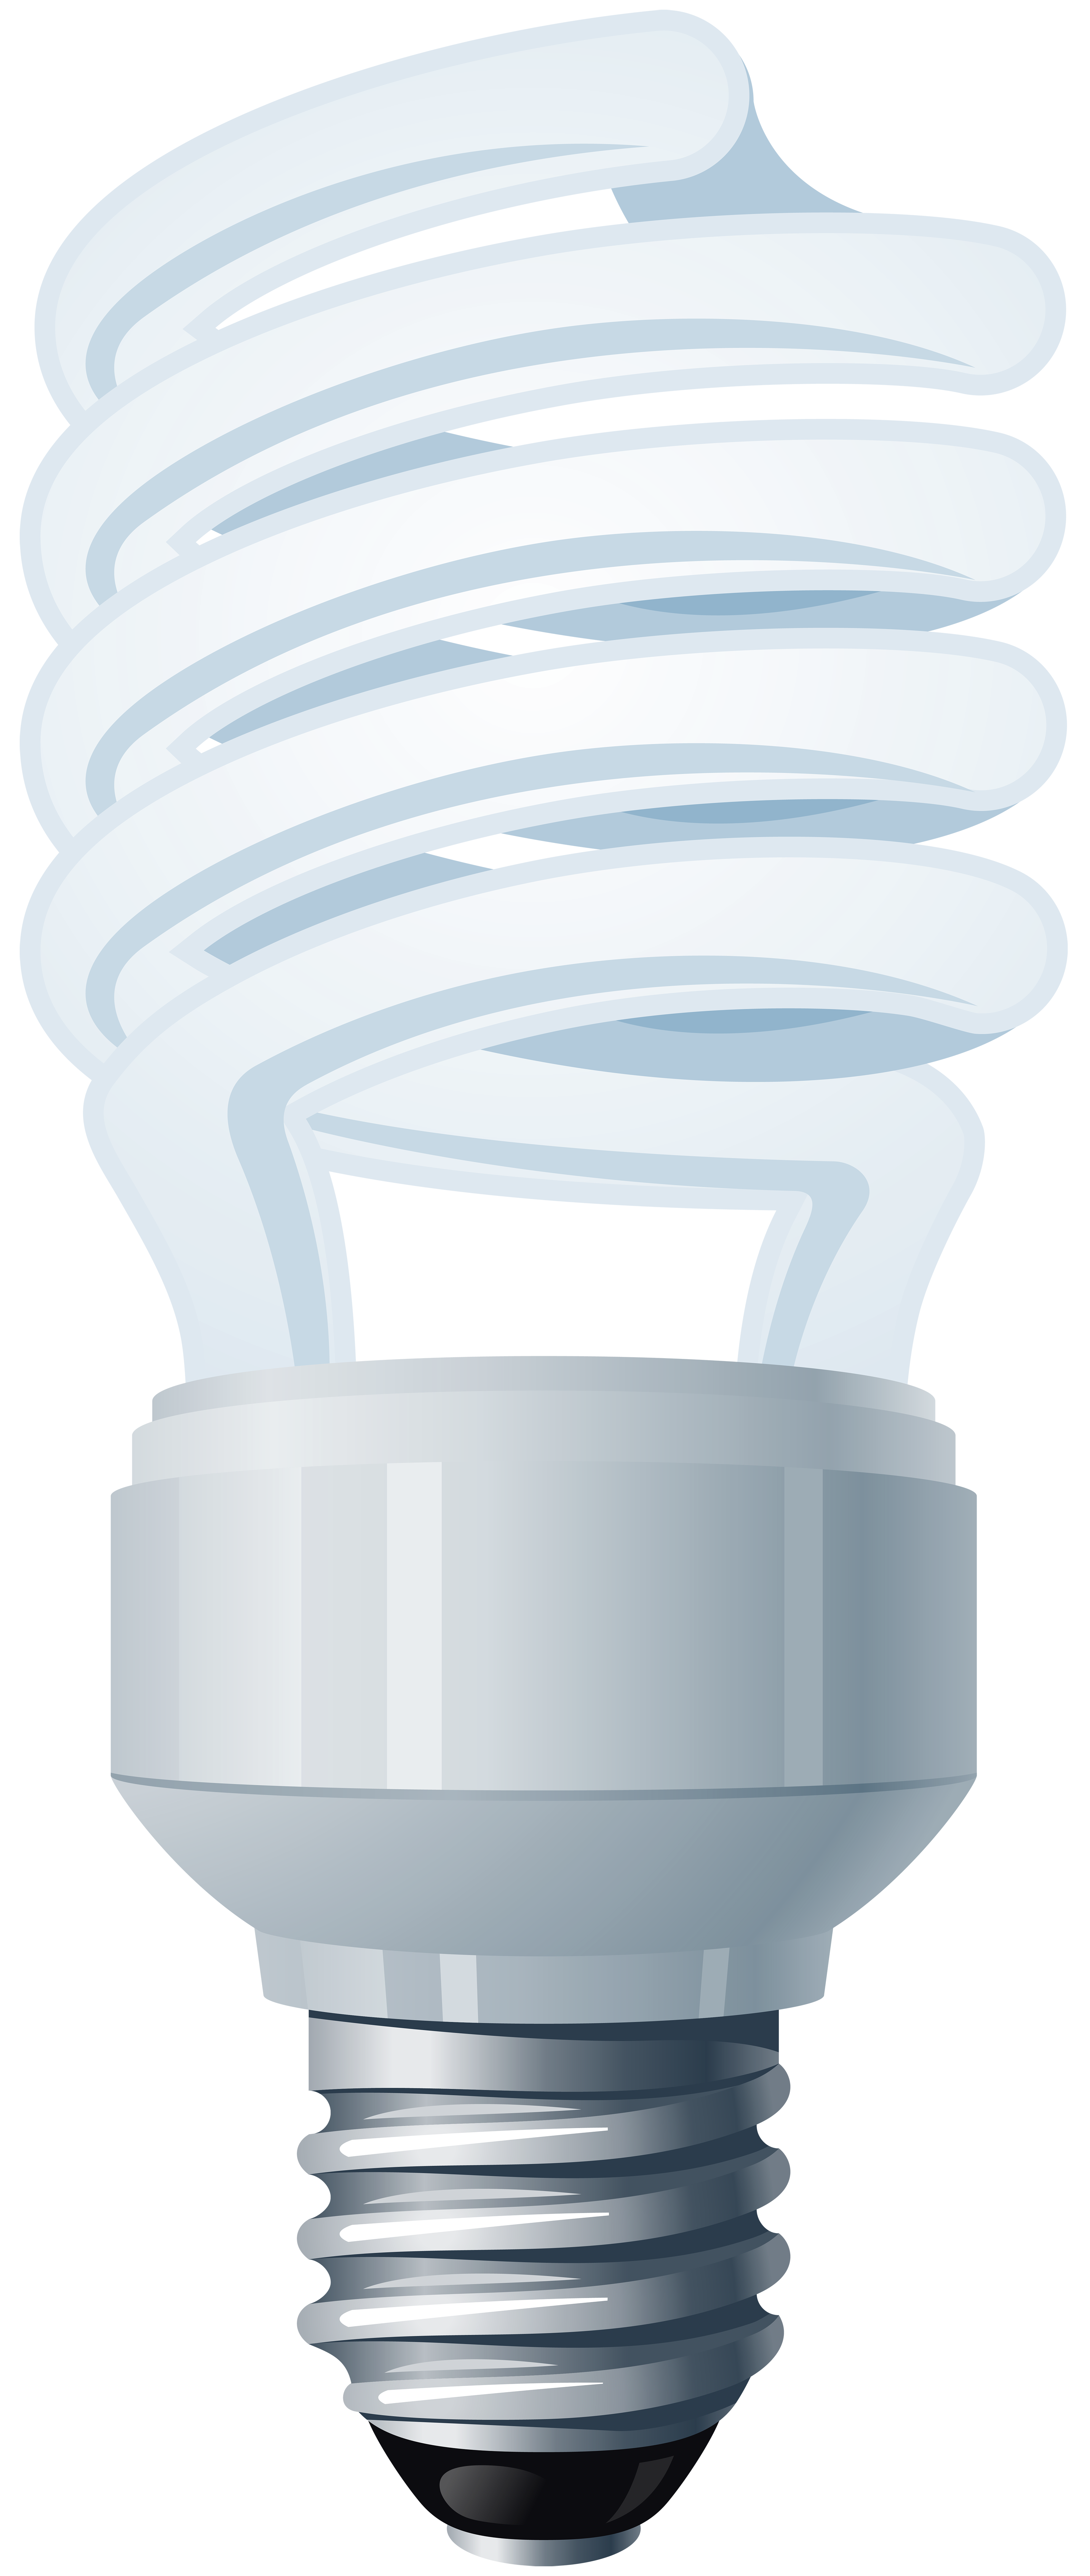 Energy saving png best. Light bulb clip art realistic